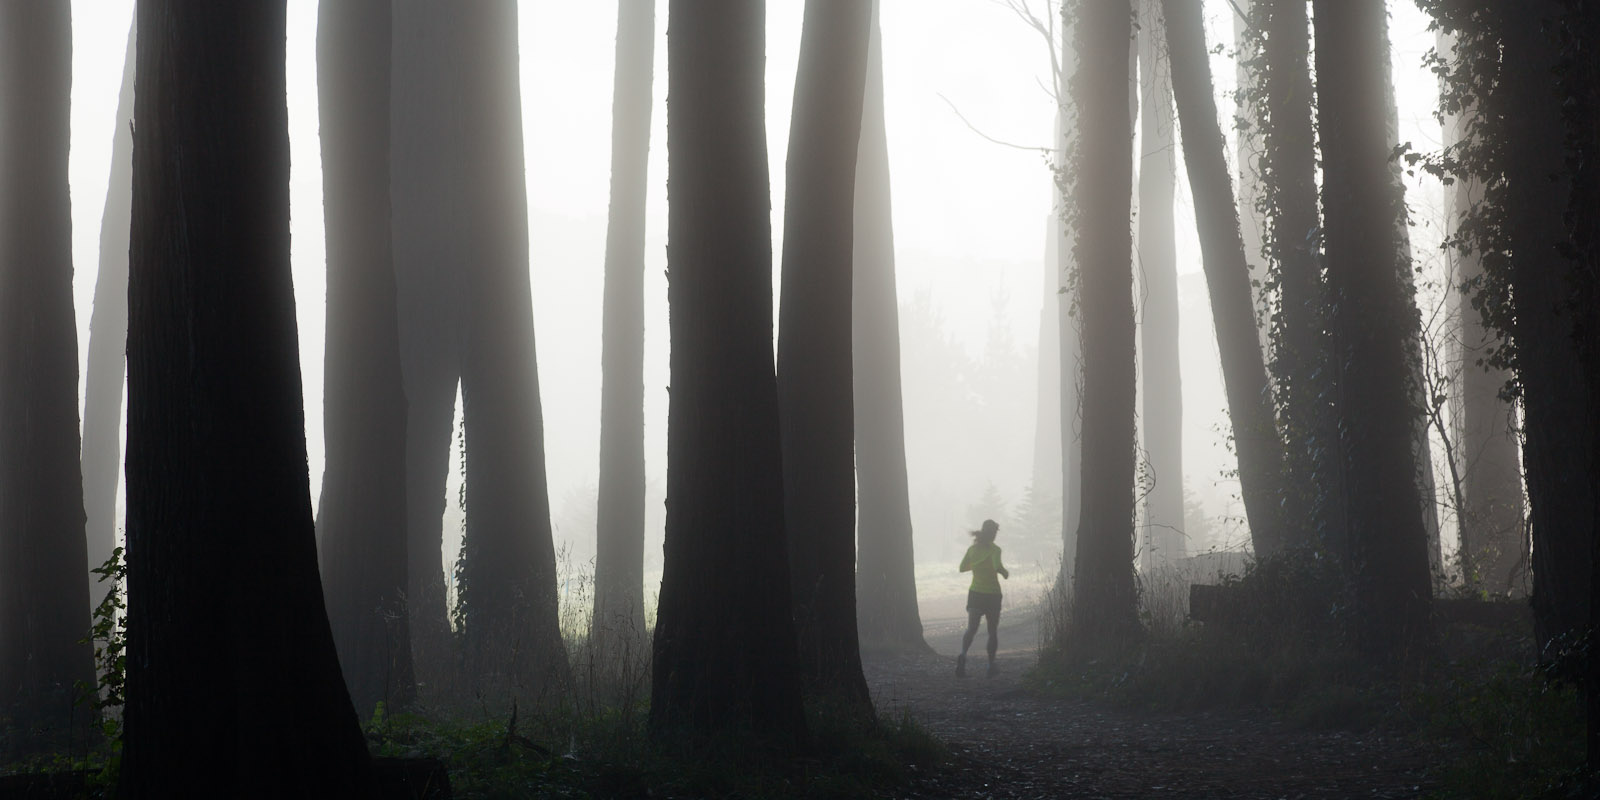 A runner running through the Cypress forest in the Presidio early in the morning. Photo © 2011 Jay Graham, all rights reserved